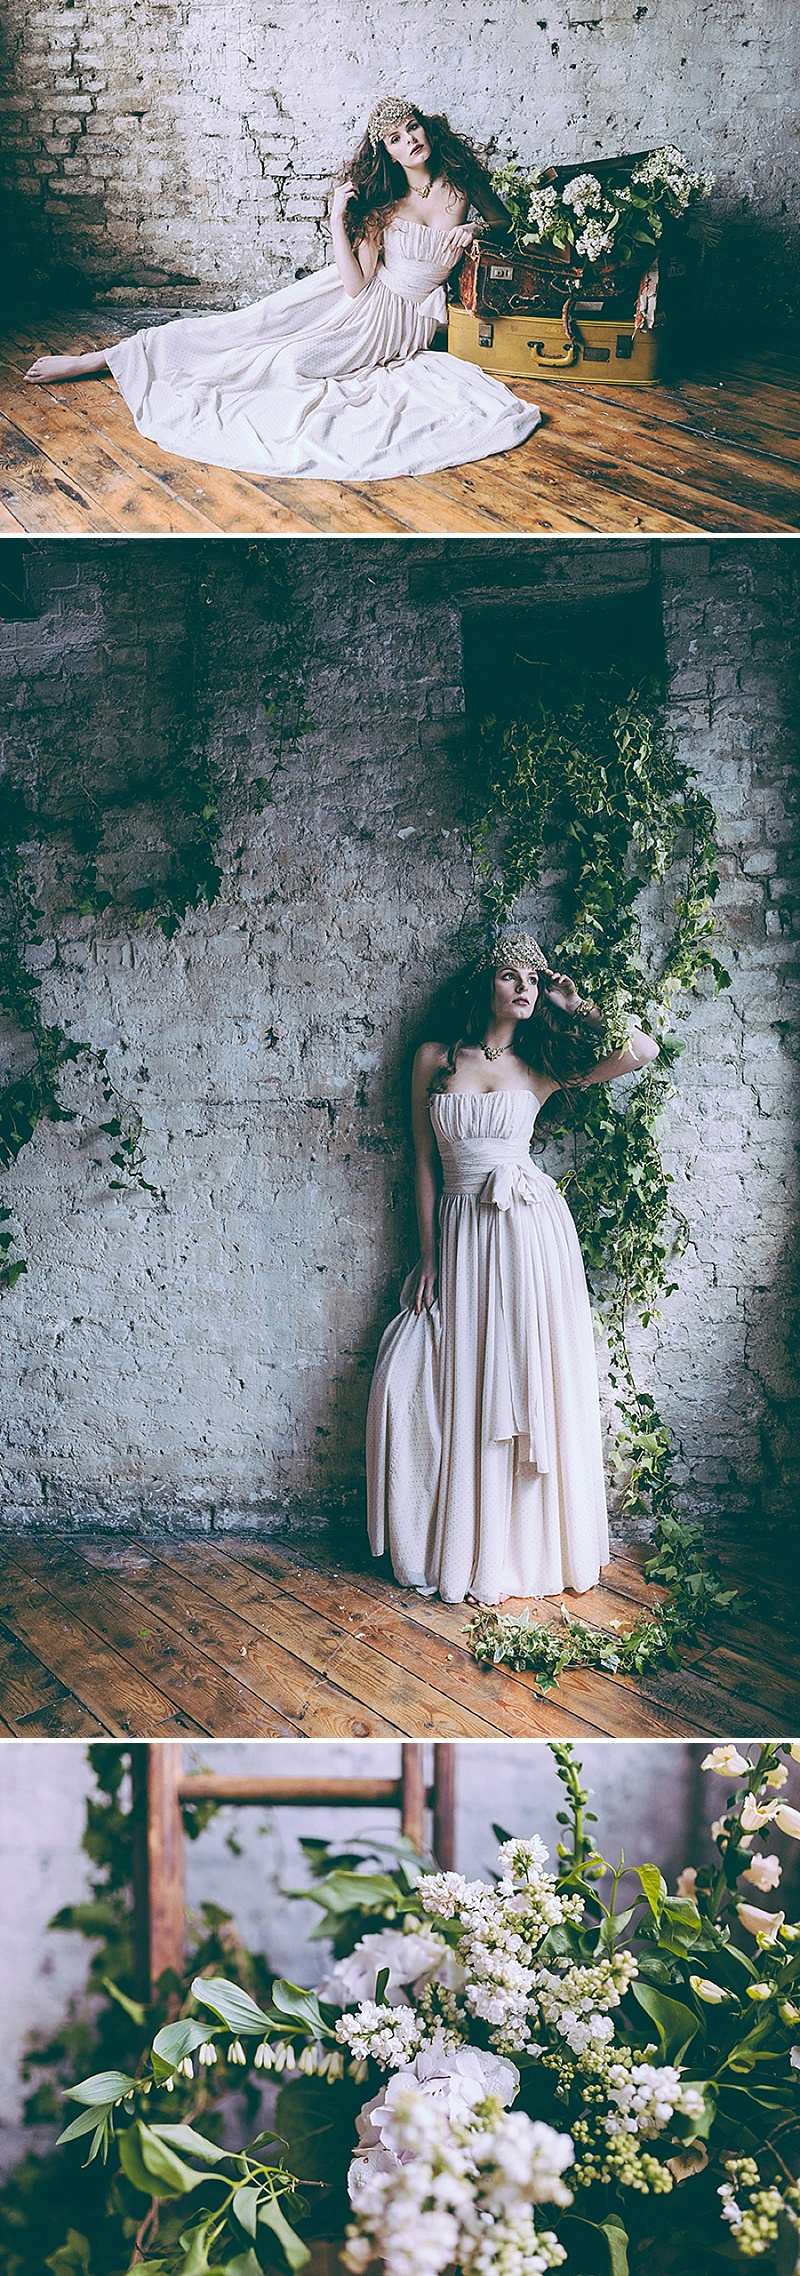 Rustic And Romantic Fairytale Bridal Inspiration Shoot With Gowns From Faith Caton-Barber And Accessories From Rosie Weisencrantz With Images By Miss Gen Photography 6